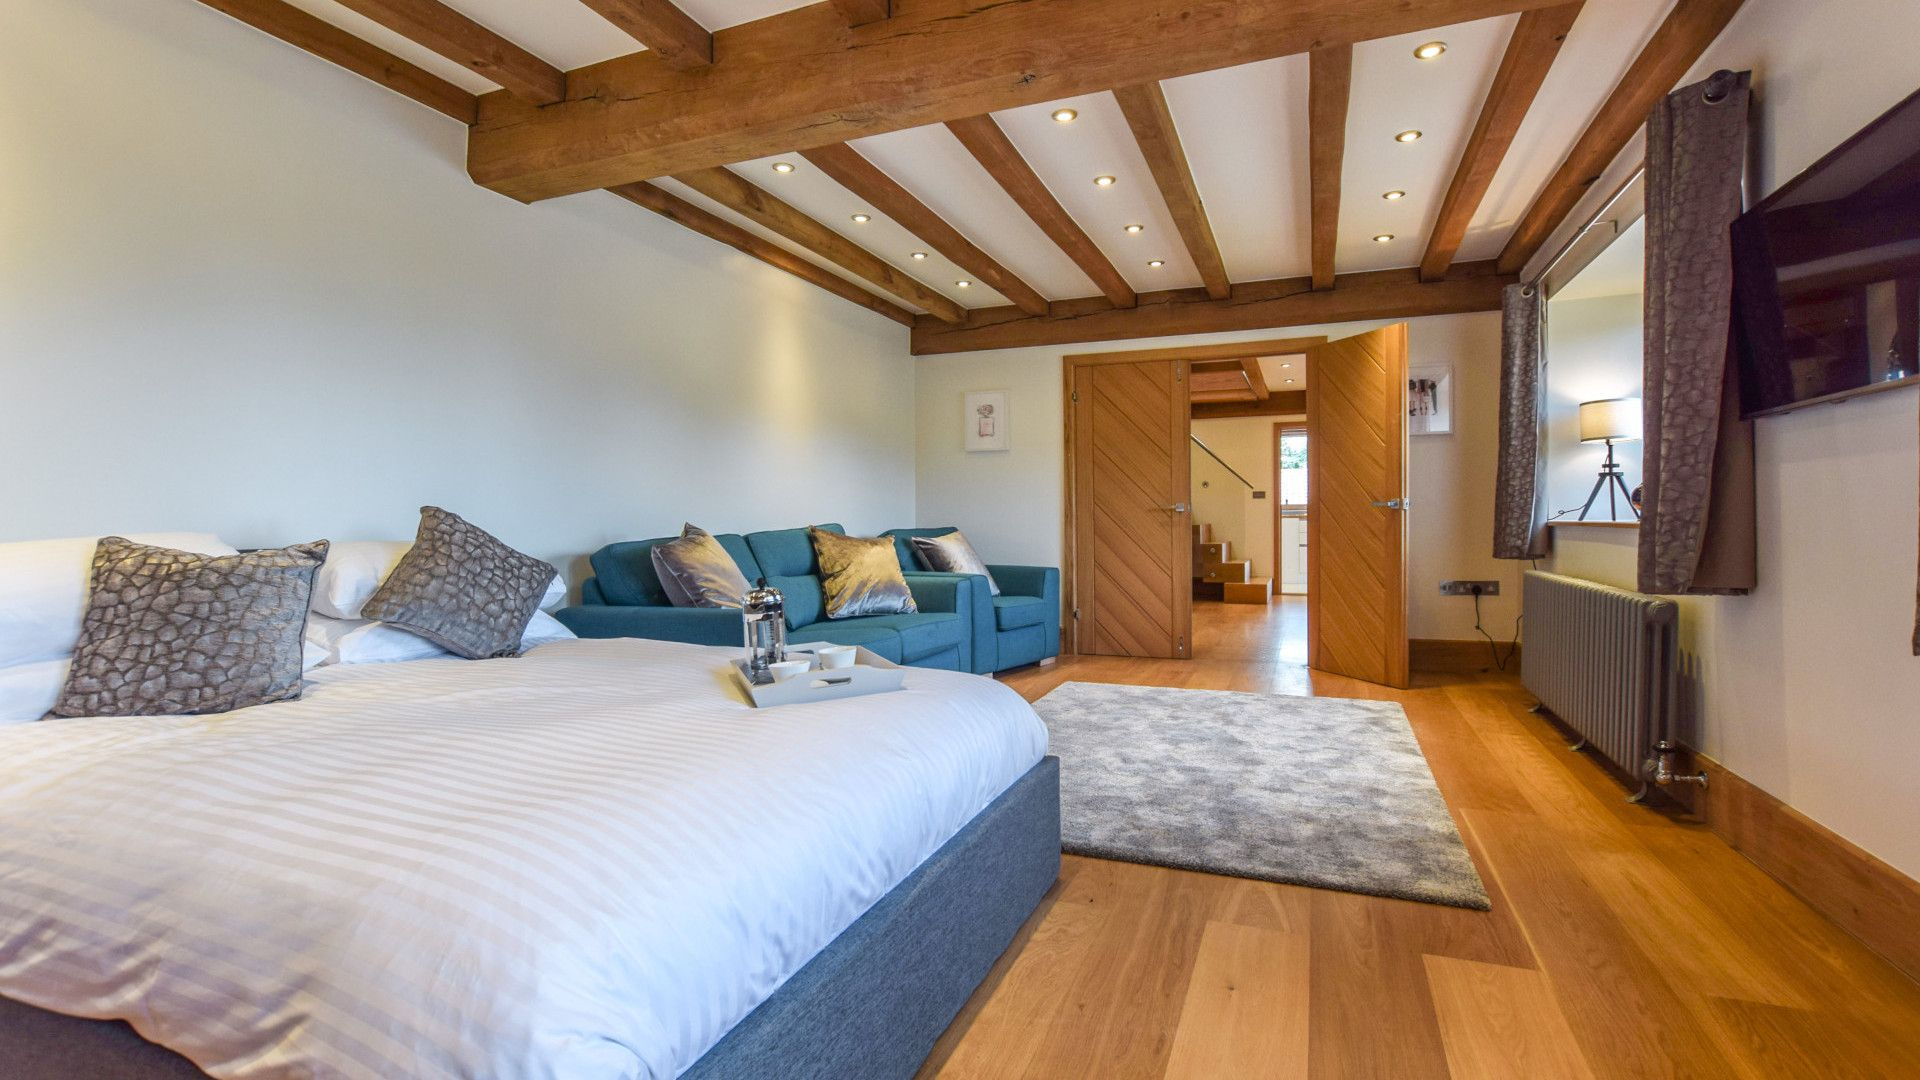 Bedroom 4 with king size bed, Old Oak House, Bolthole Retreats